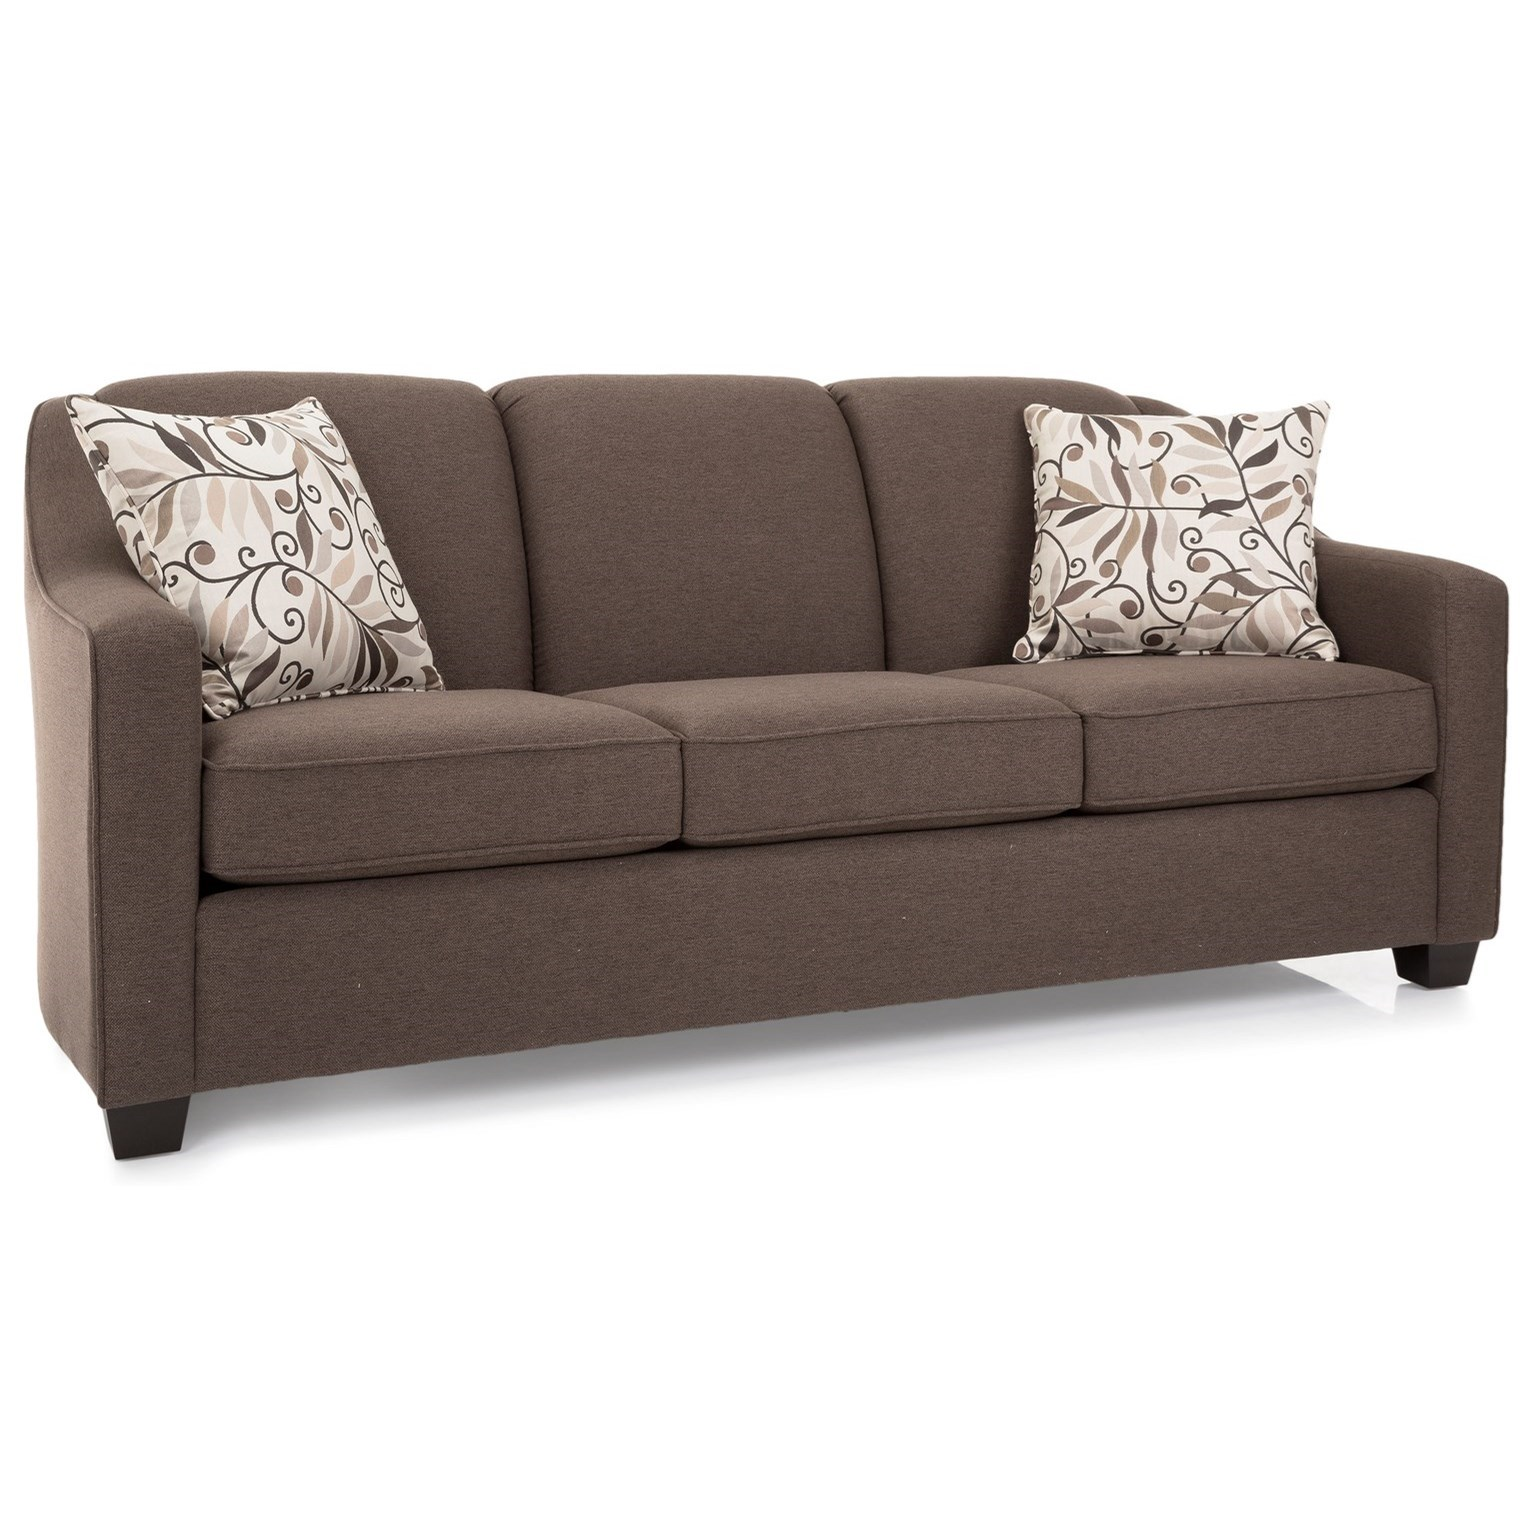 2934 Sofa by Decor-Rest at Stoney Creek Furniture